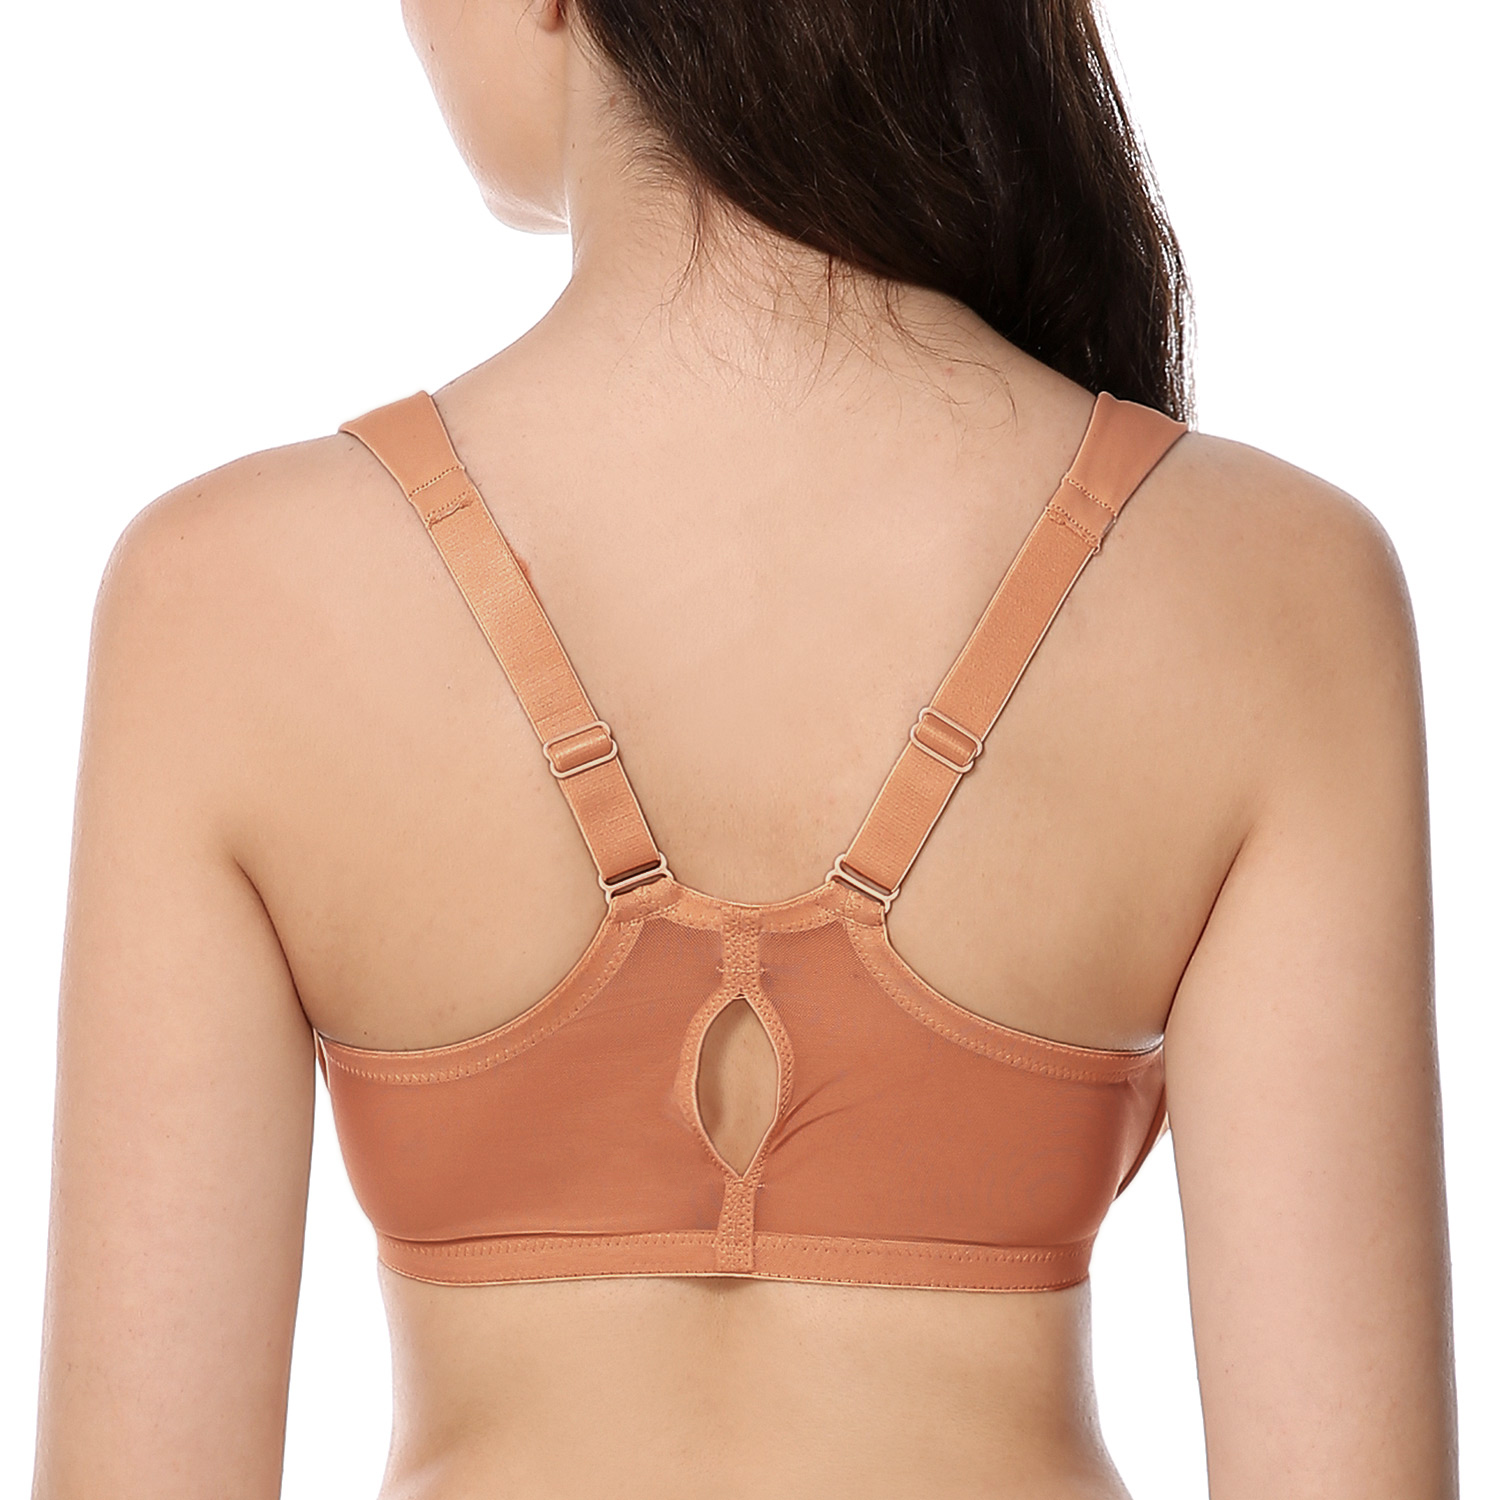 Women-039-s-Full-Coverage-Underwire-Non-Padded-Racerback-Front-Closure-Bra thumbnail 18